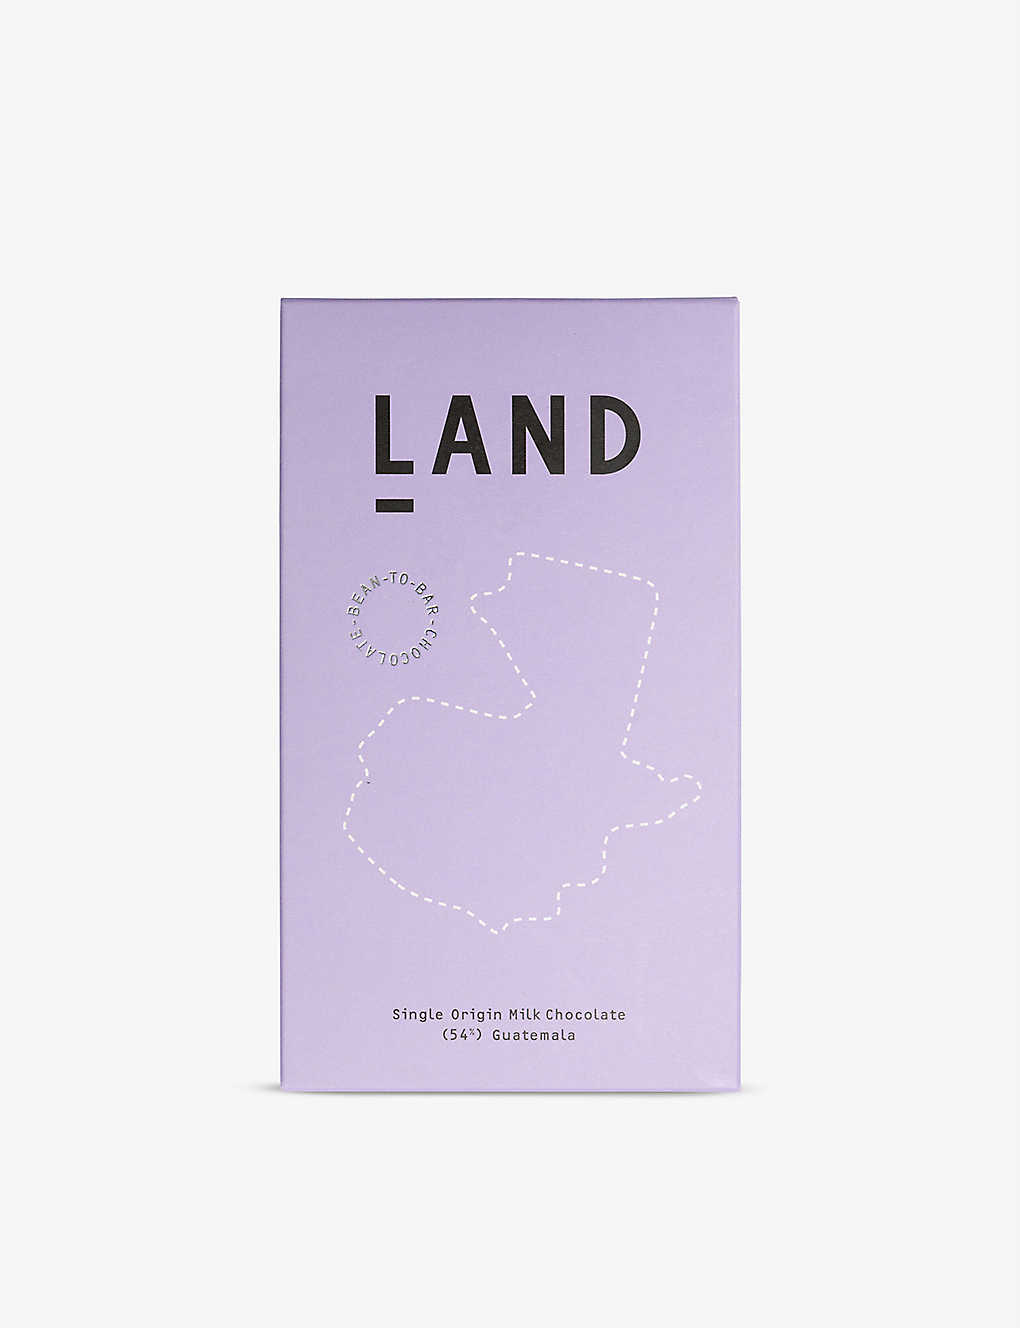 CHOCOLATE: Land 54% Guatemalan milk chocolate bar 60g